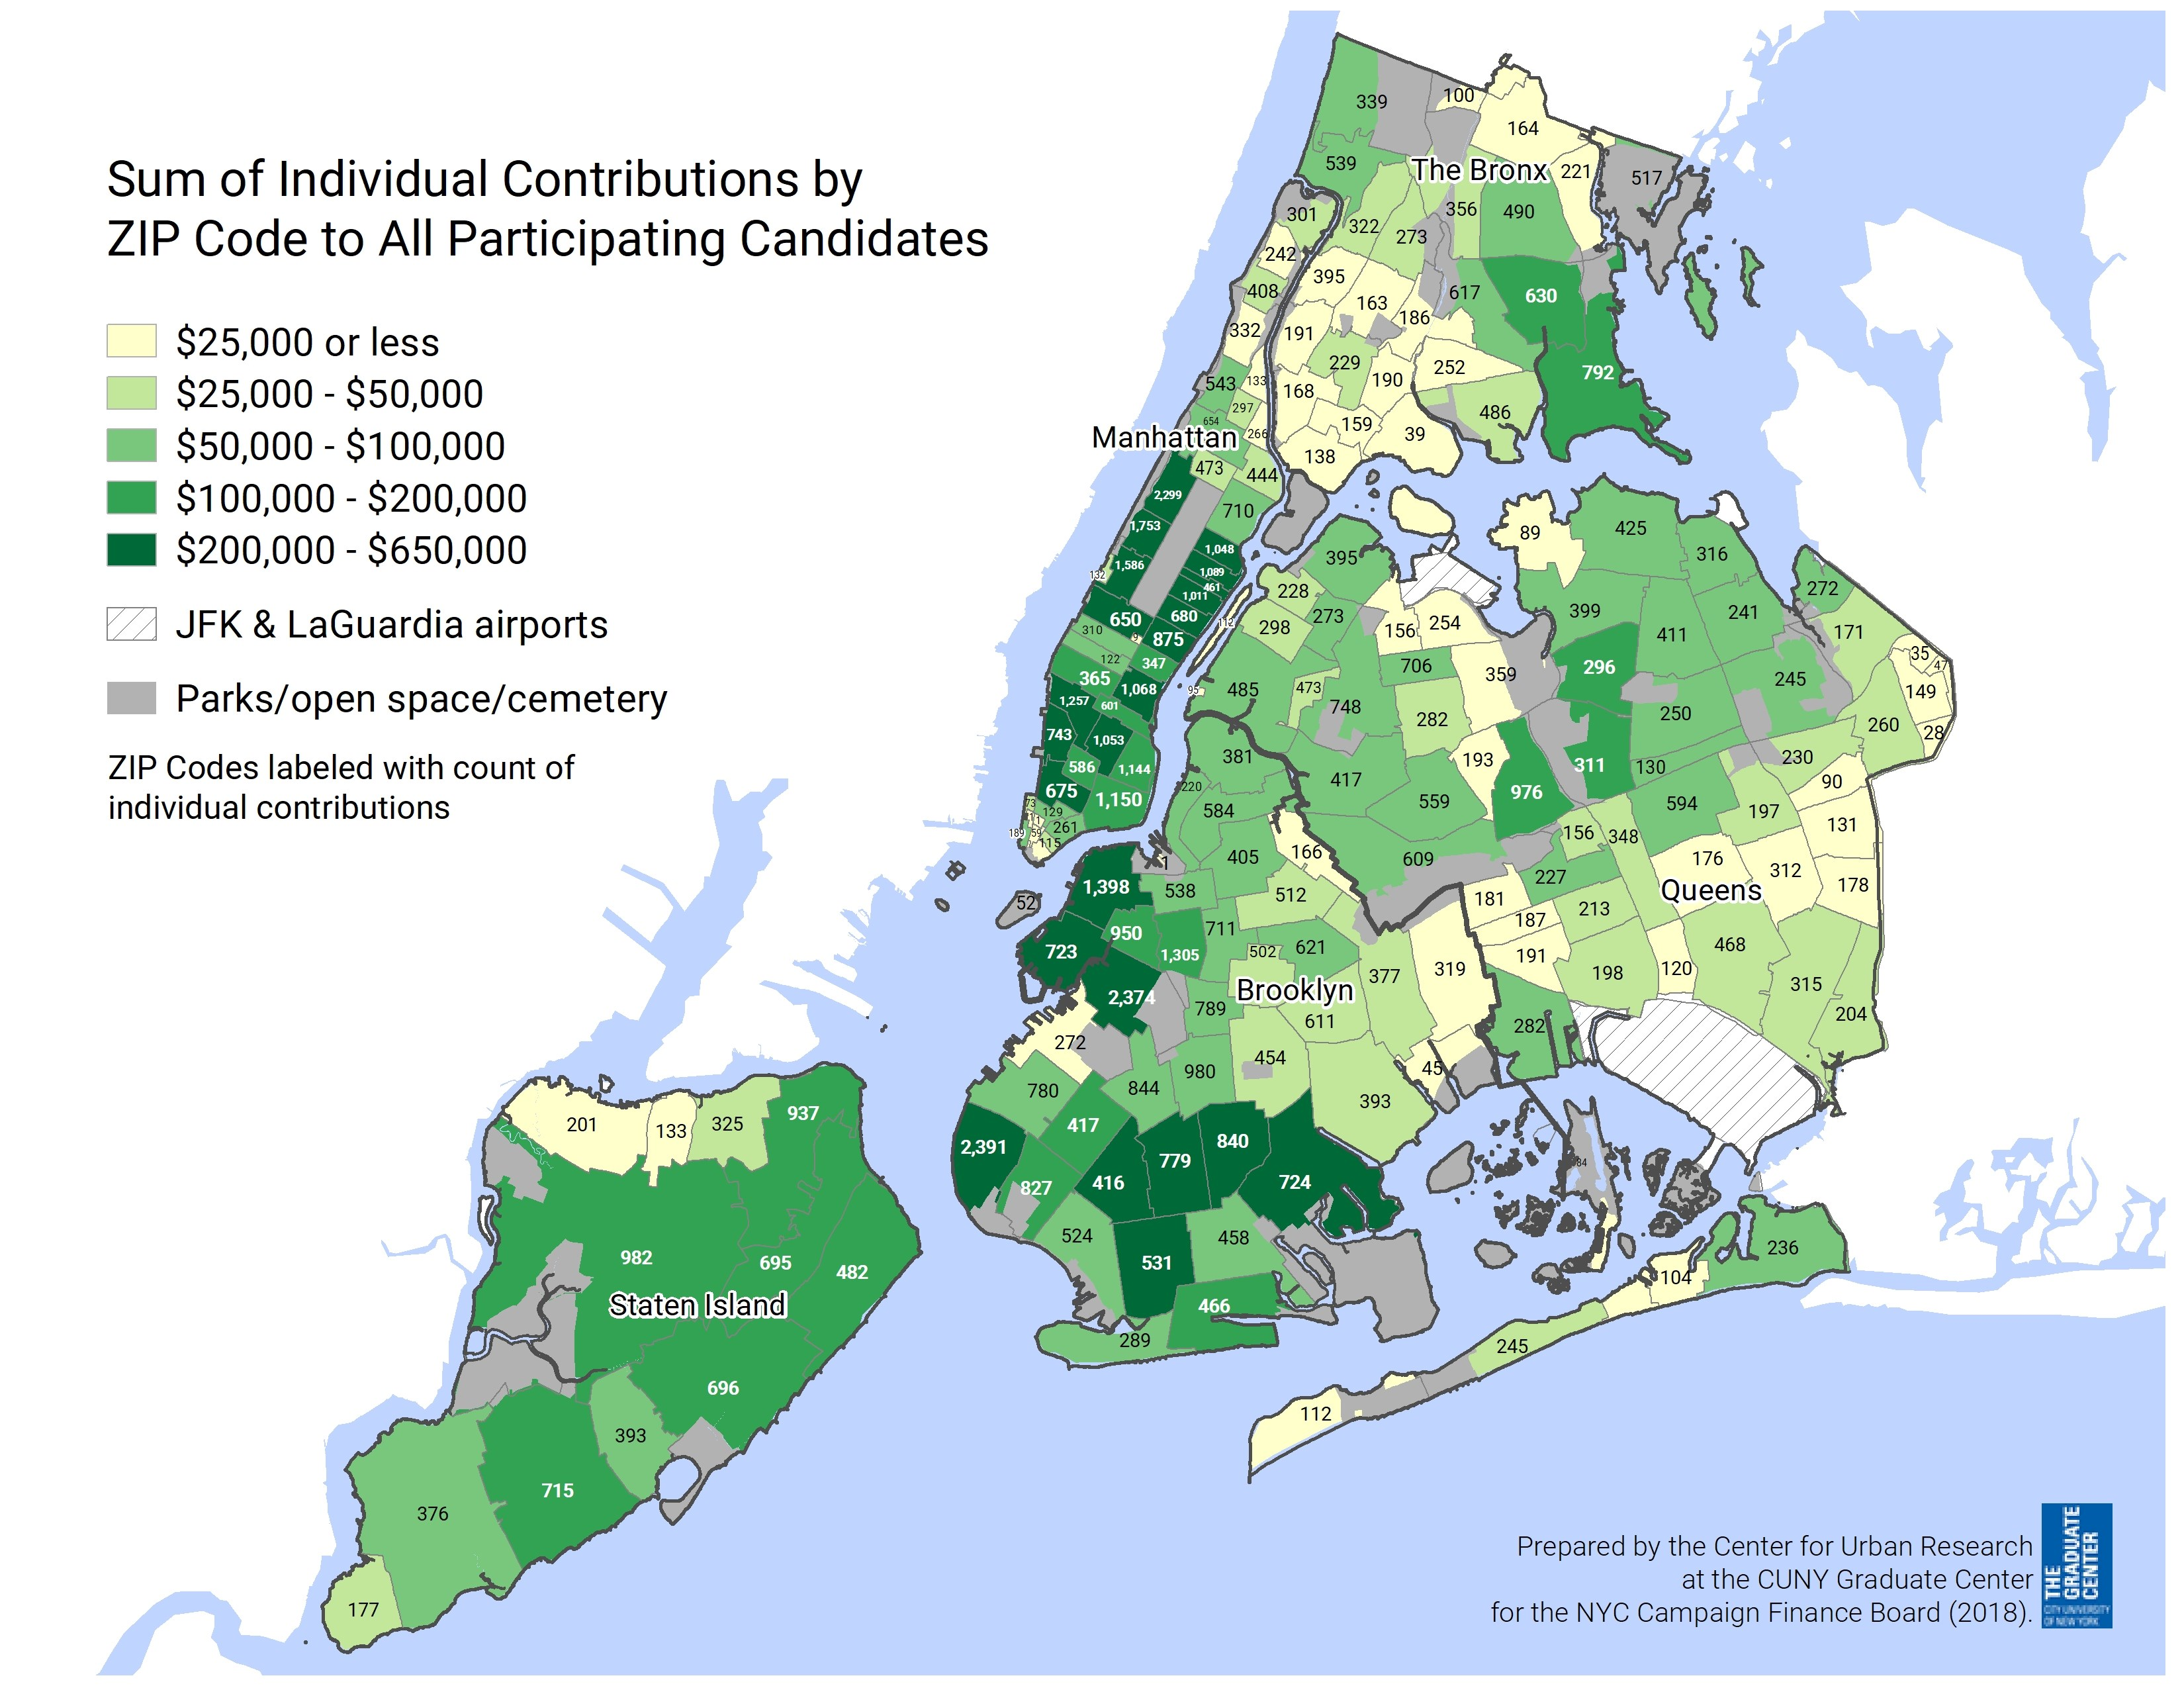 Map of New York showing the sum of all indicual contributions by ZIP Code to participating candidates